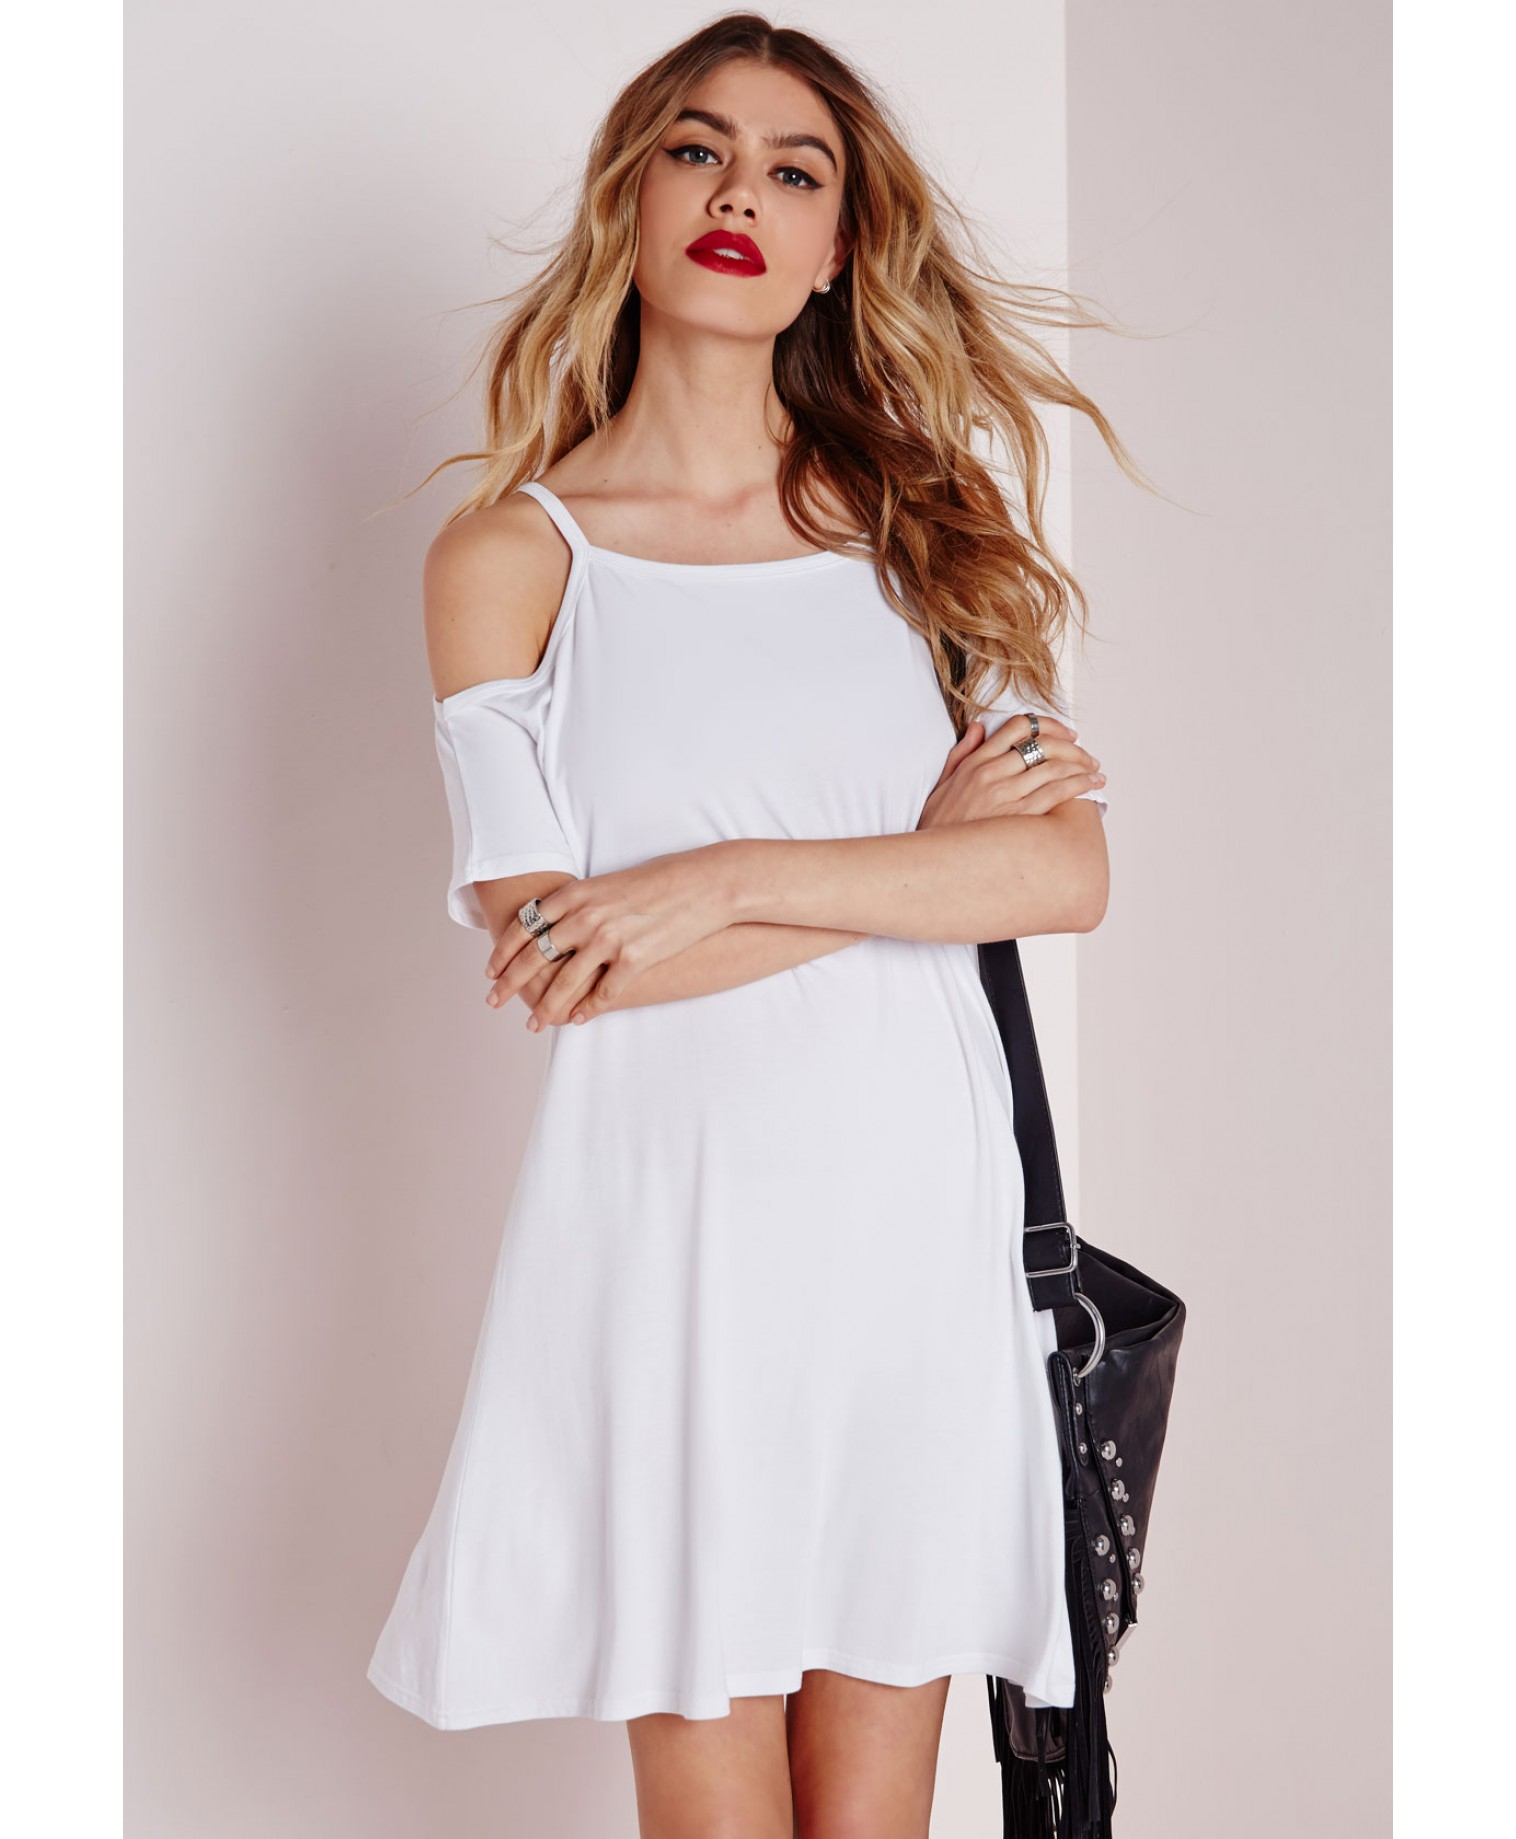 89e09599baa68 Lyst - Missguided Cold Shoulder Swing Dress White in White